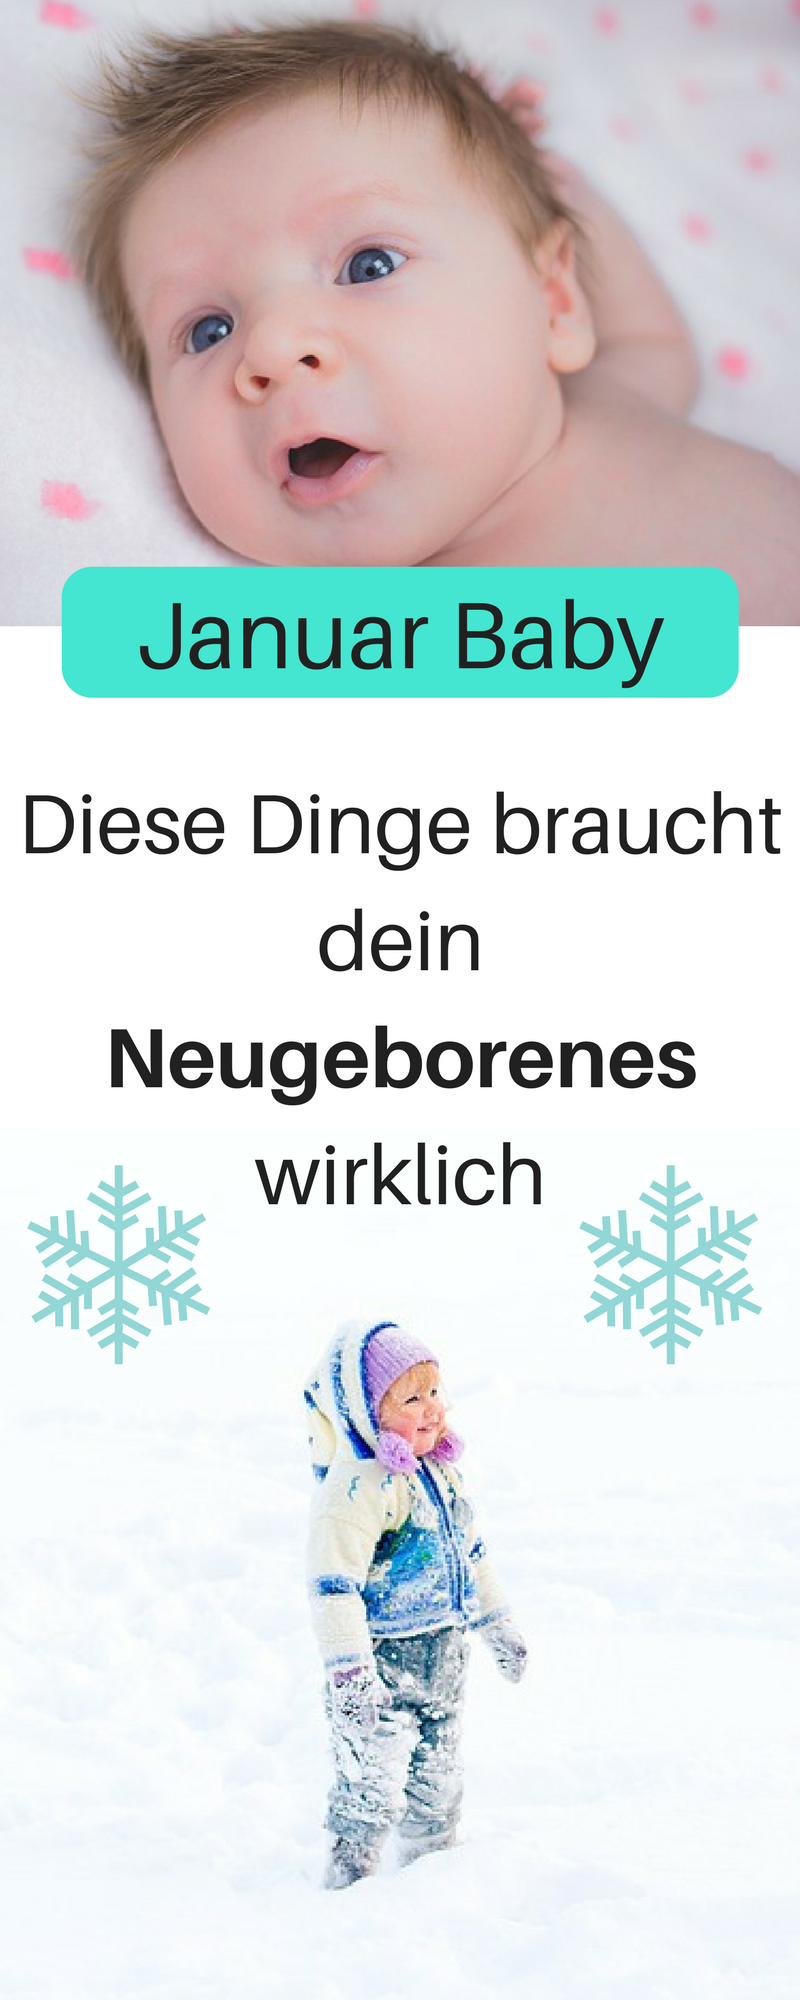 Baby Stands for Winter Babies – 13 + 1 Important Things ☃ ☃